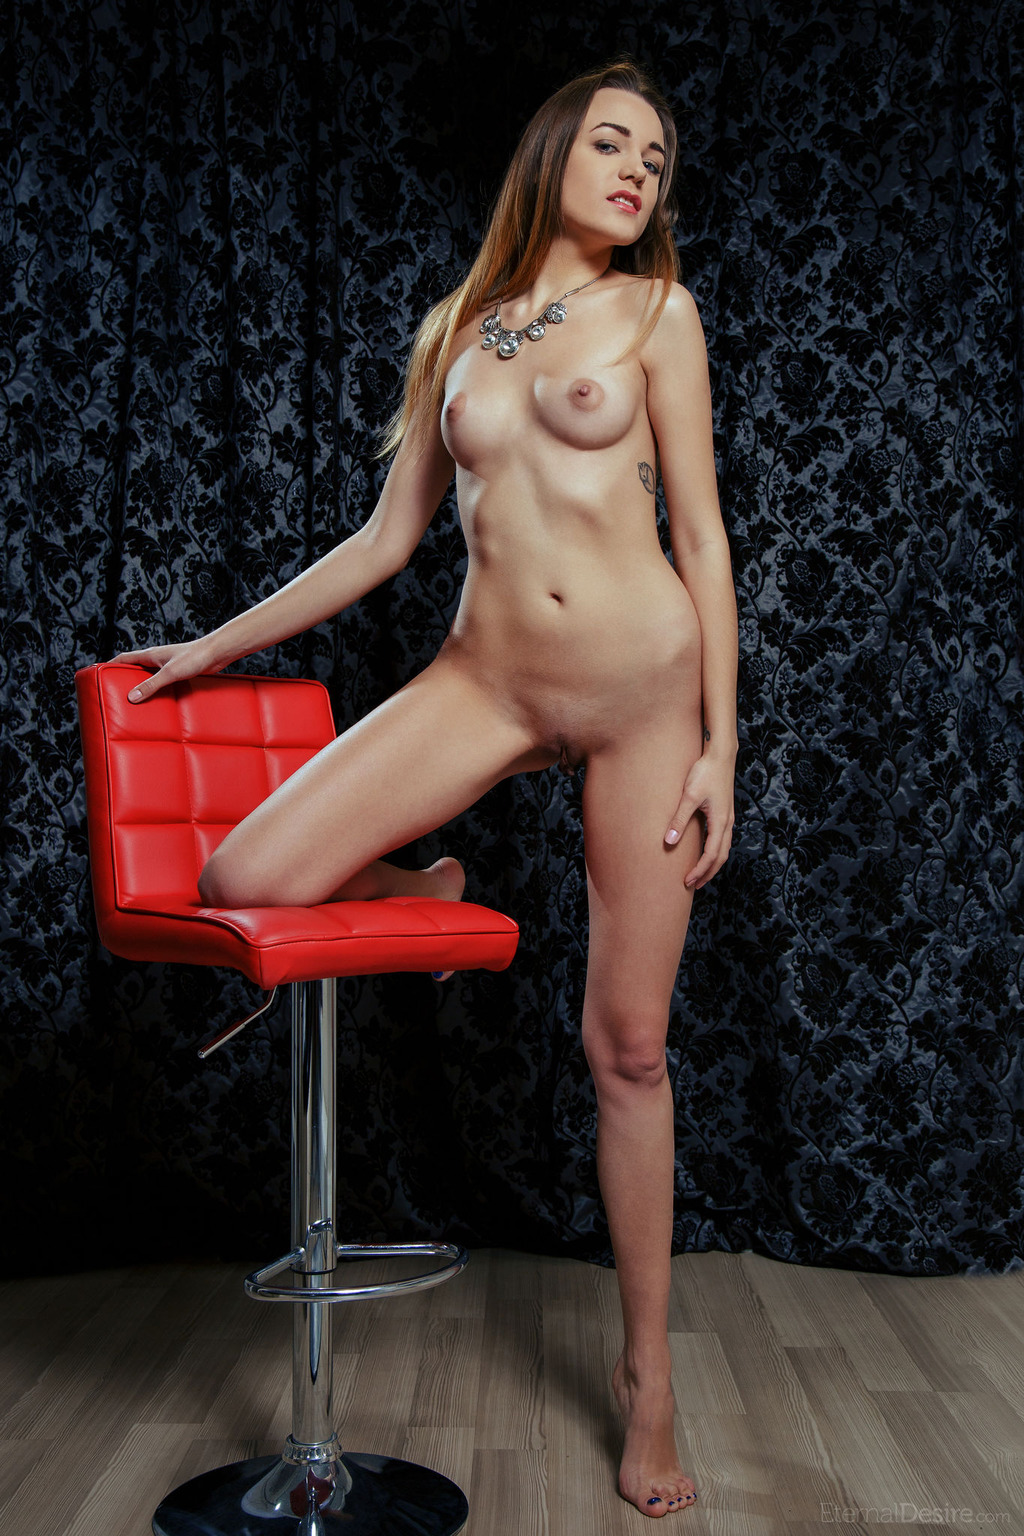 Sexy Evangelina Spreading On A Red Chair 02